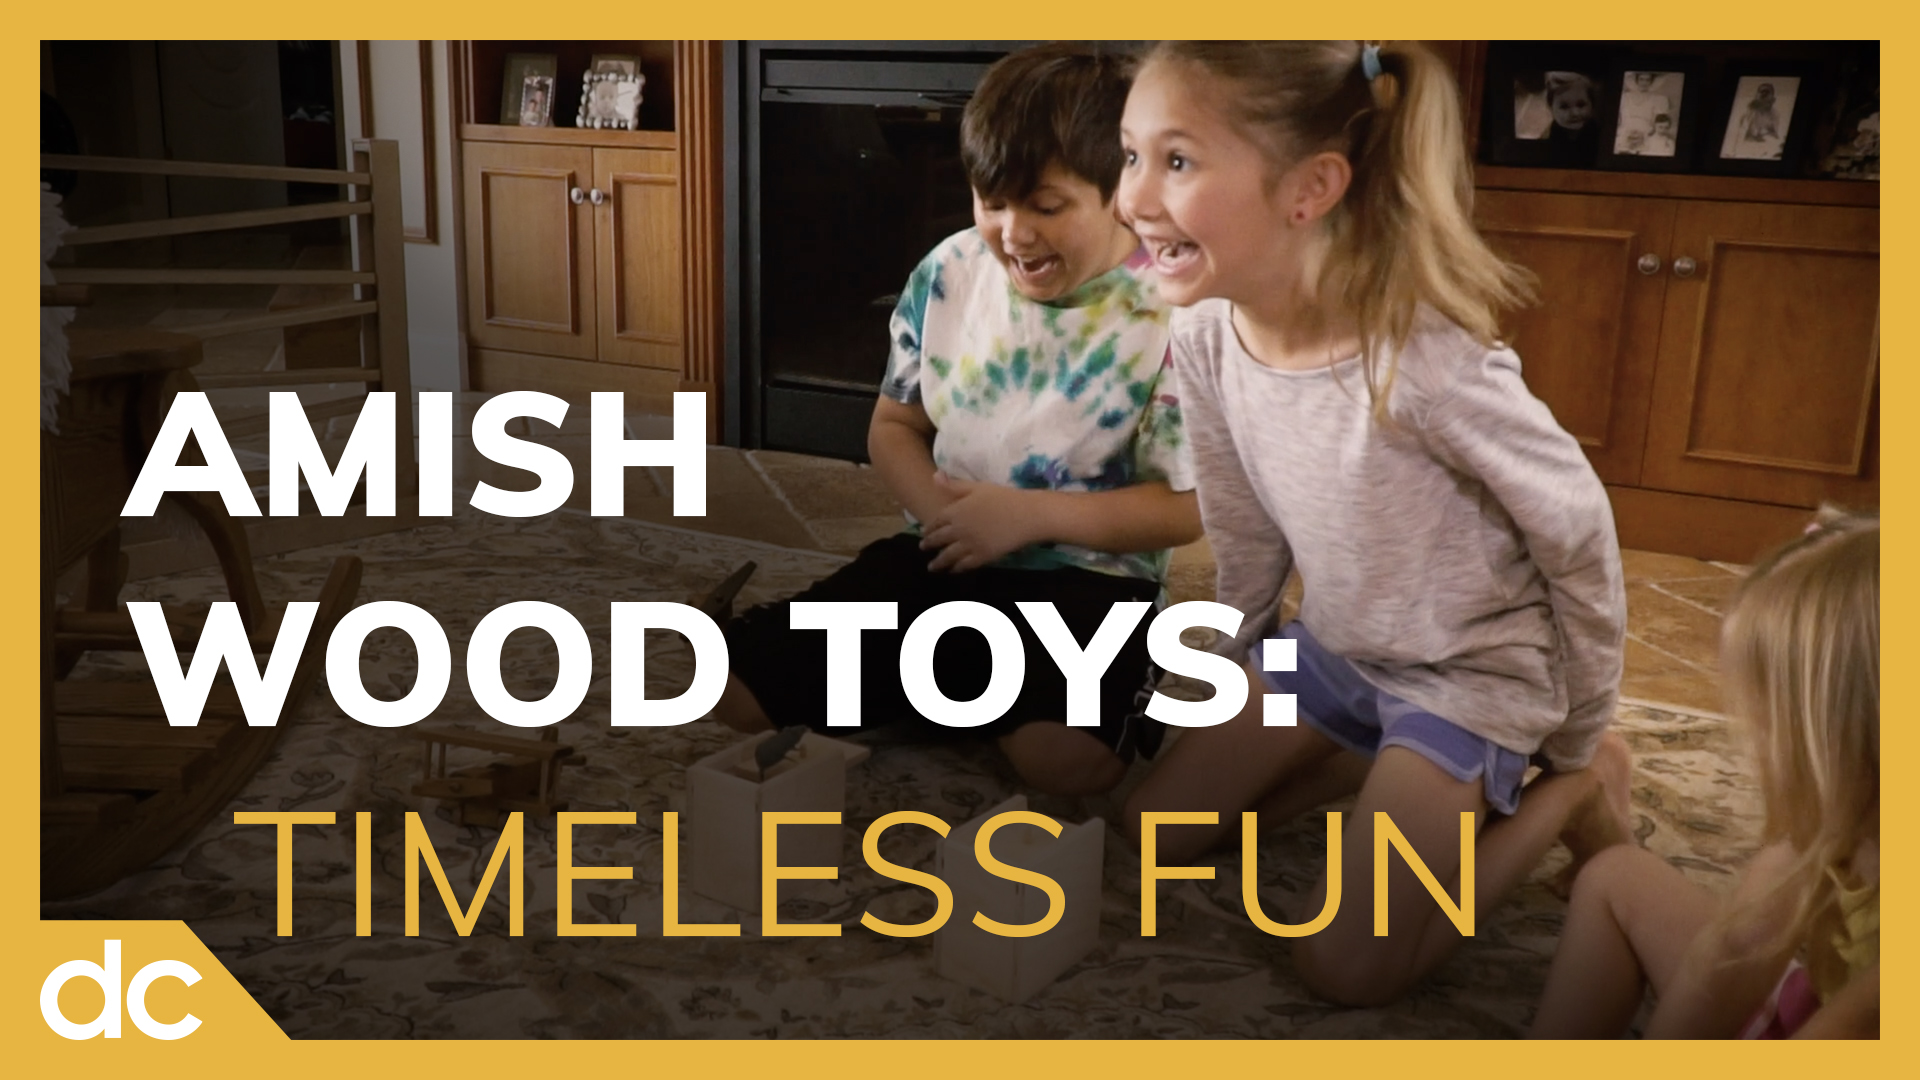 Amish Wood Toys: Timeless Fun